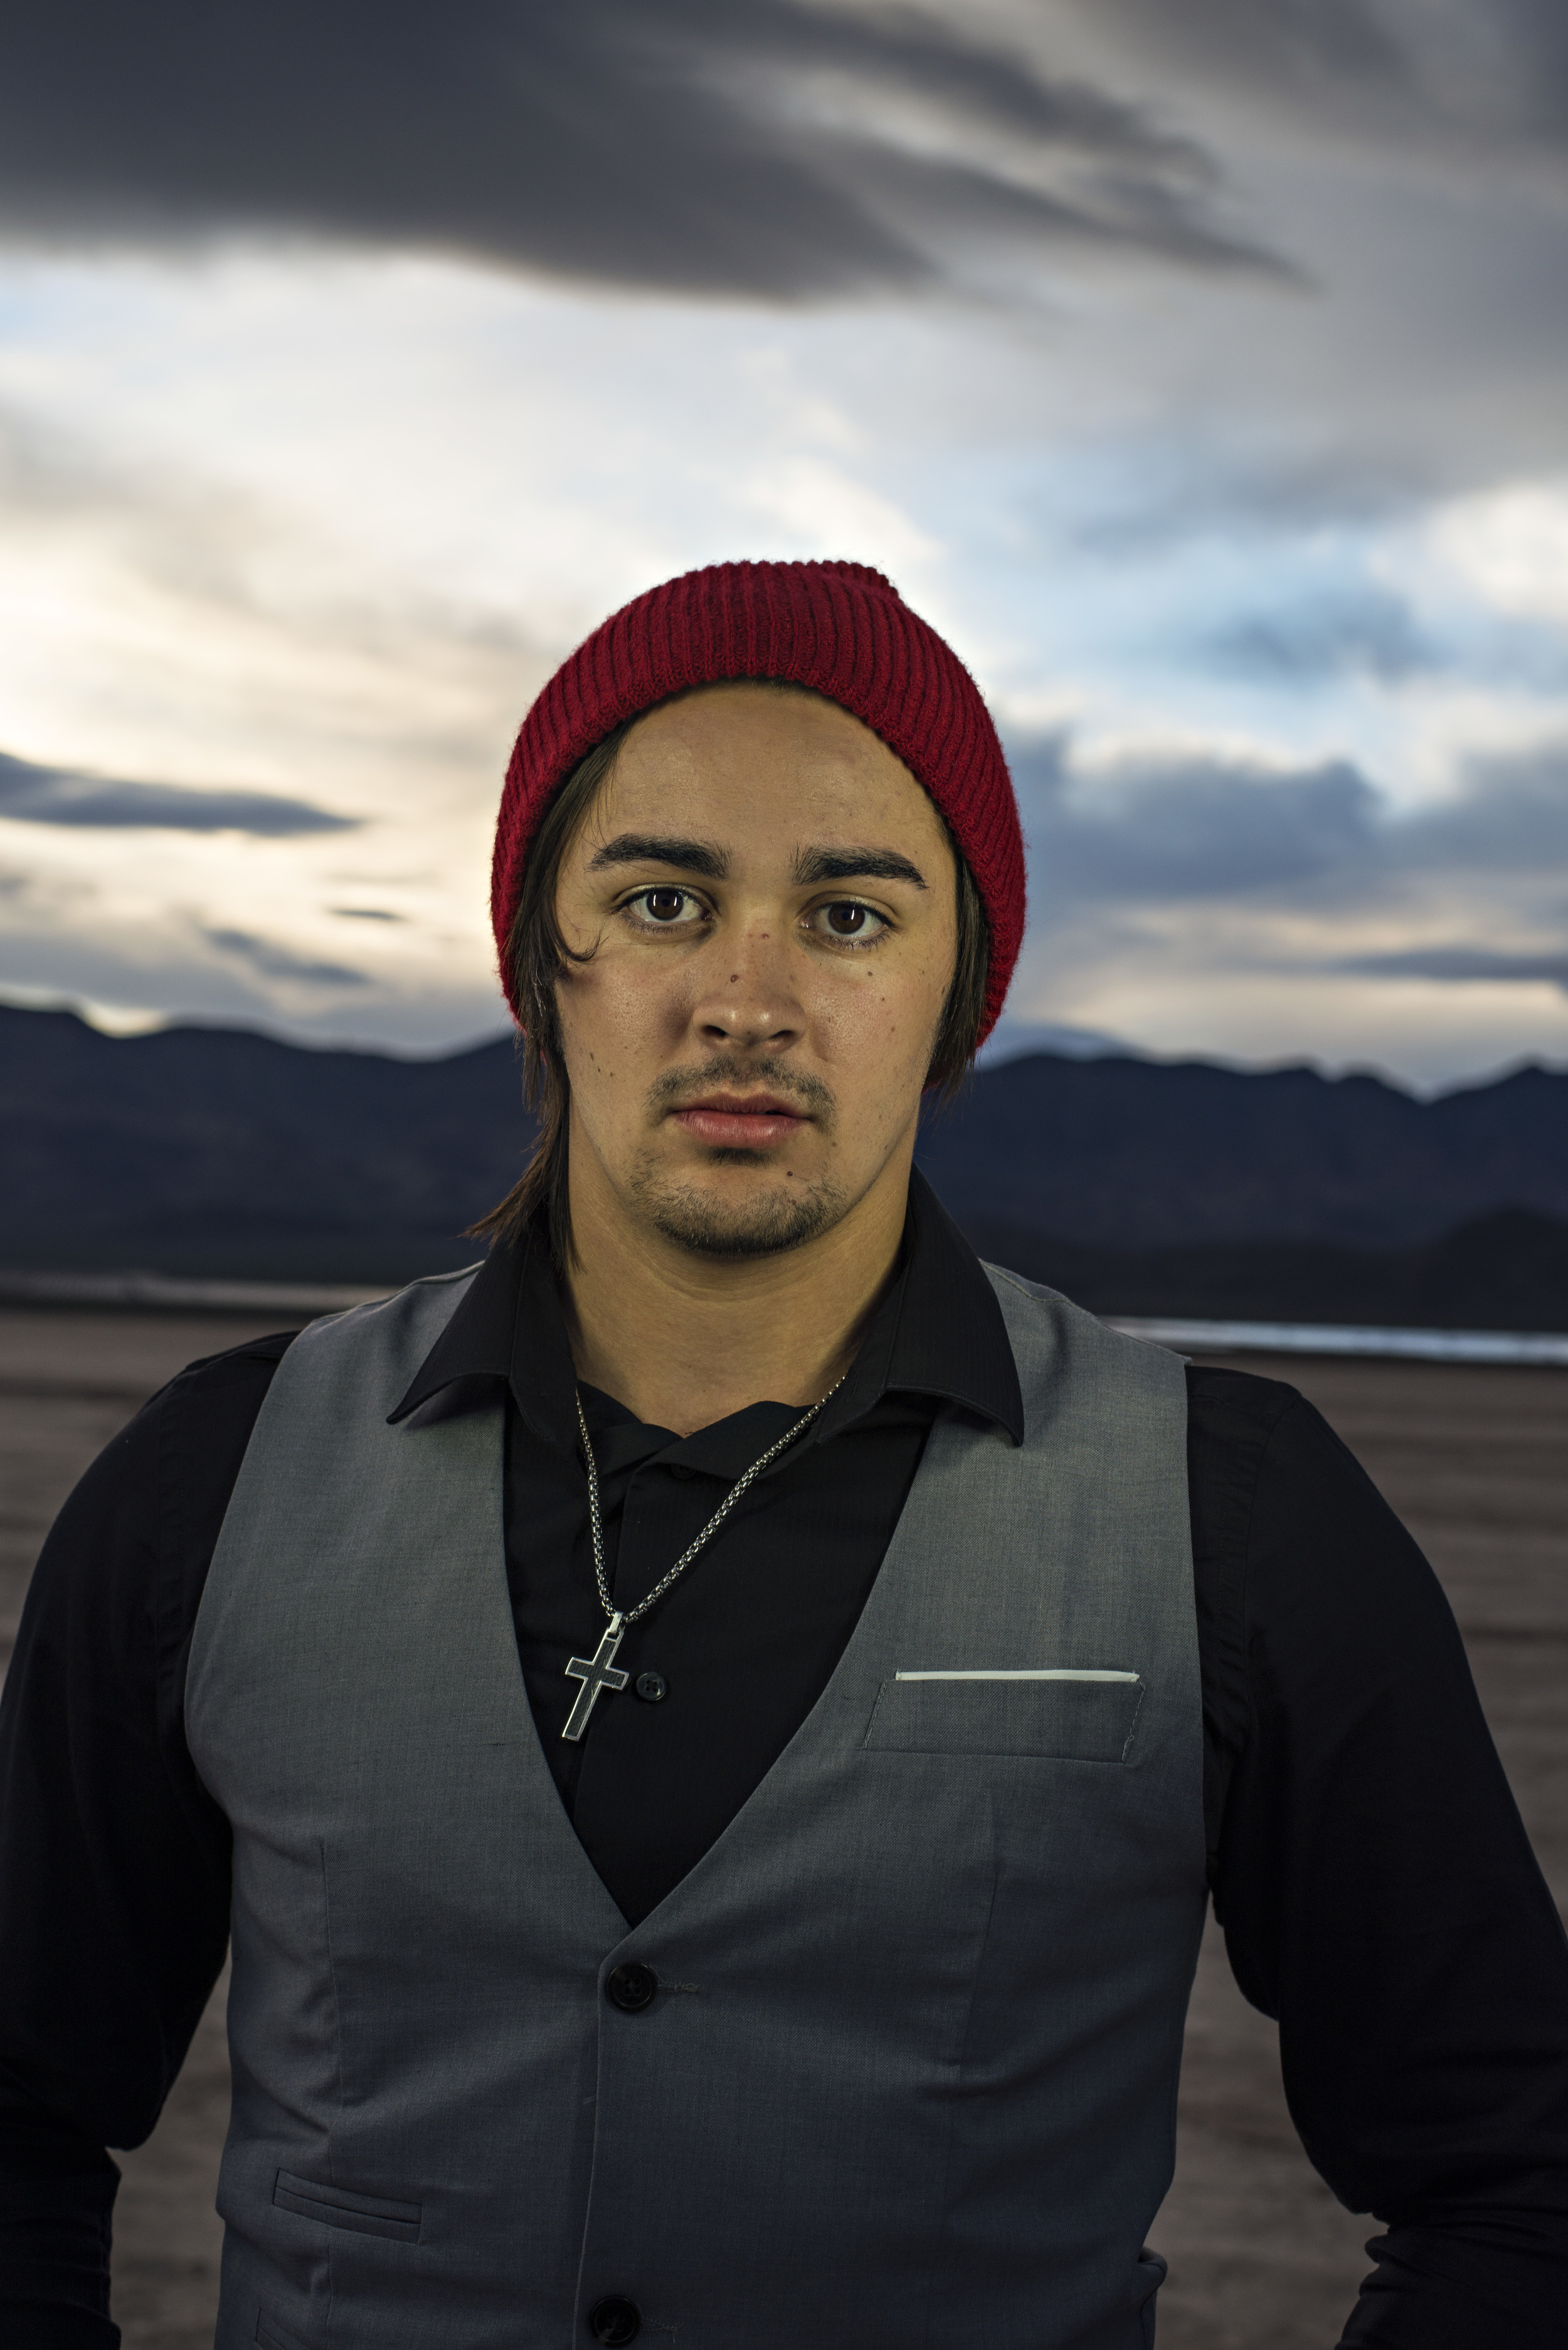 Grunge Guy from Roseburg Oregon with red beanie in Nelson, Las Vegas.